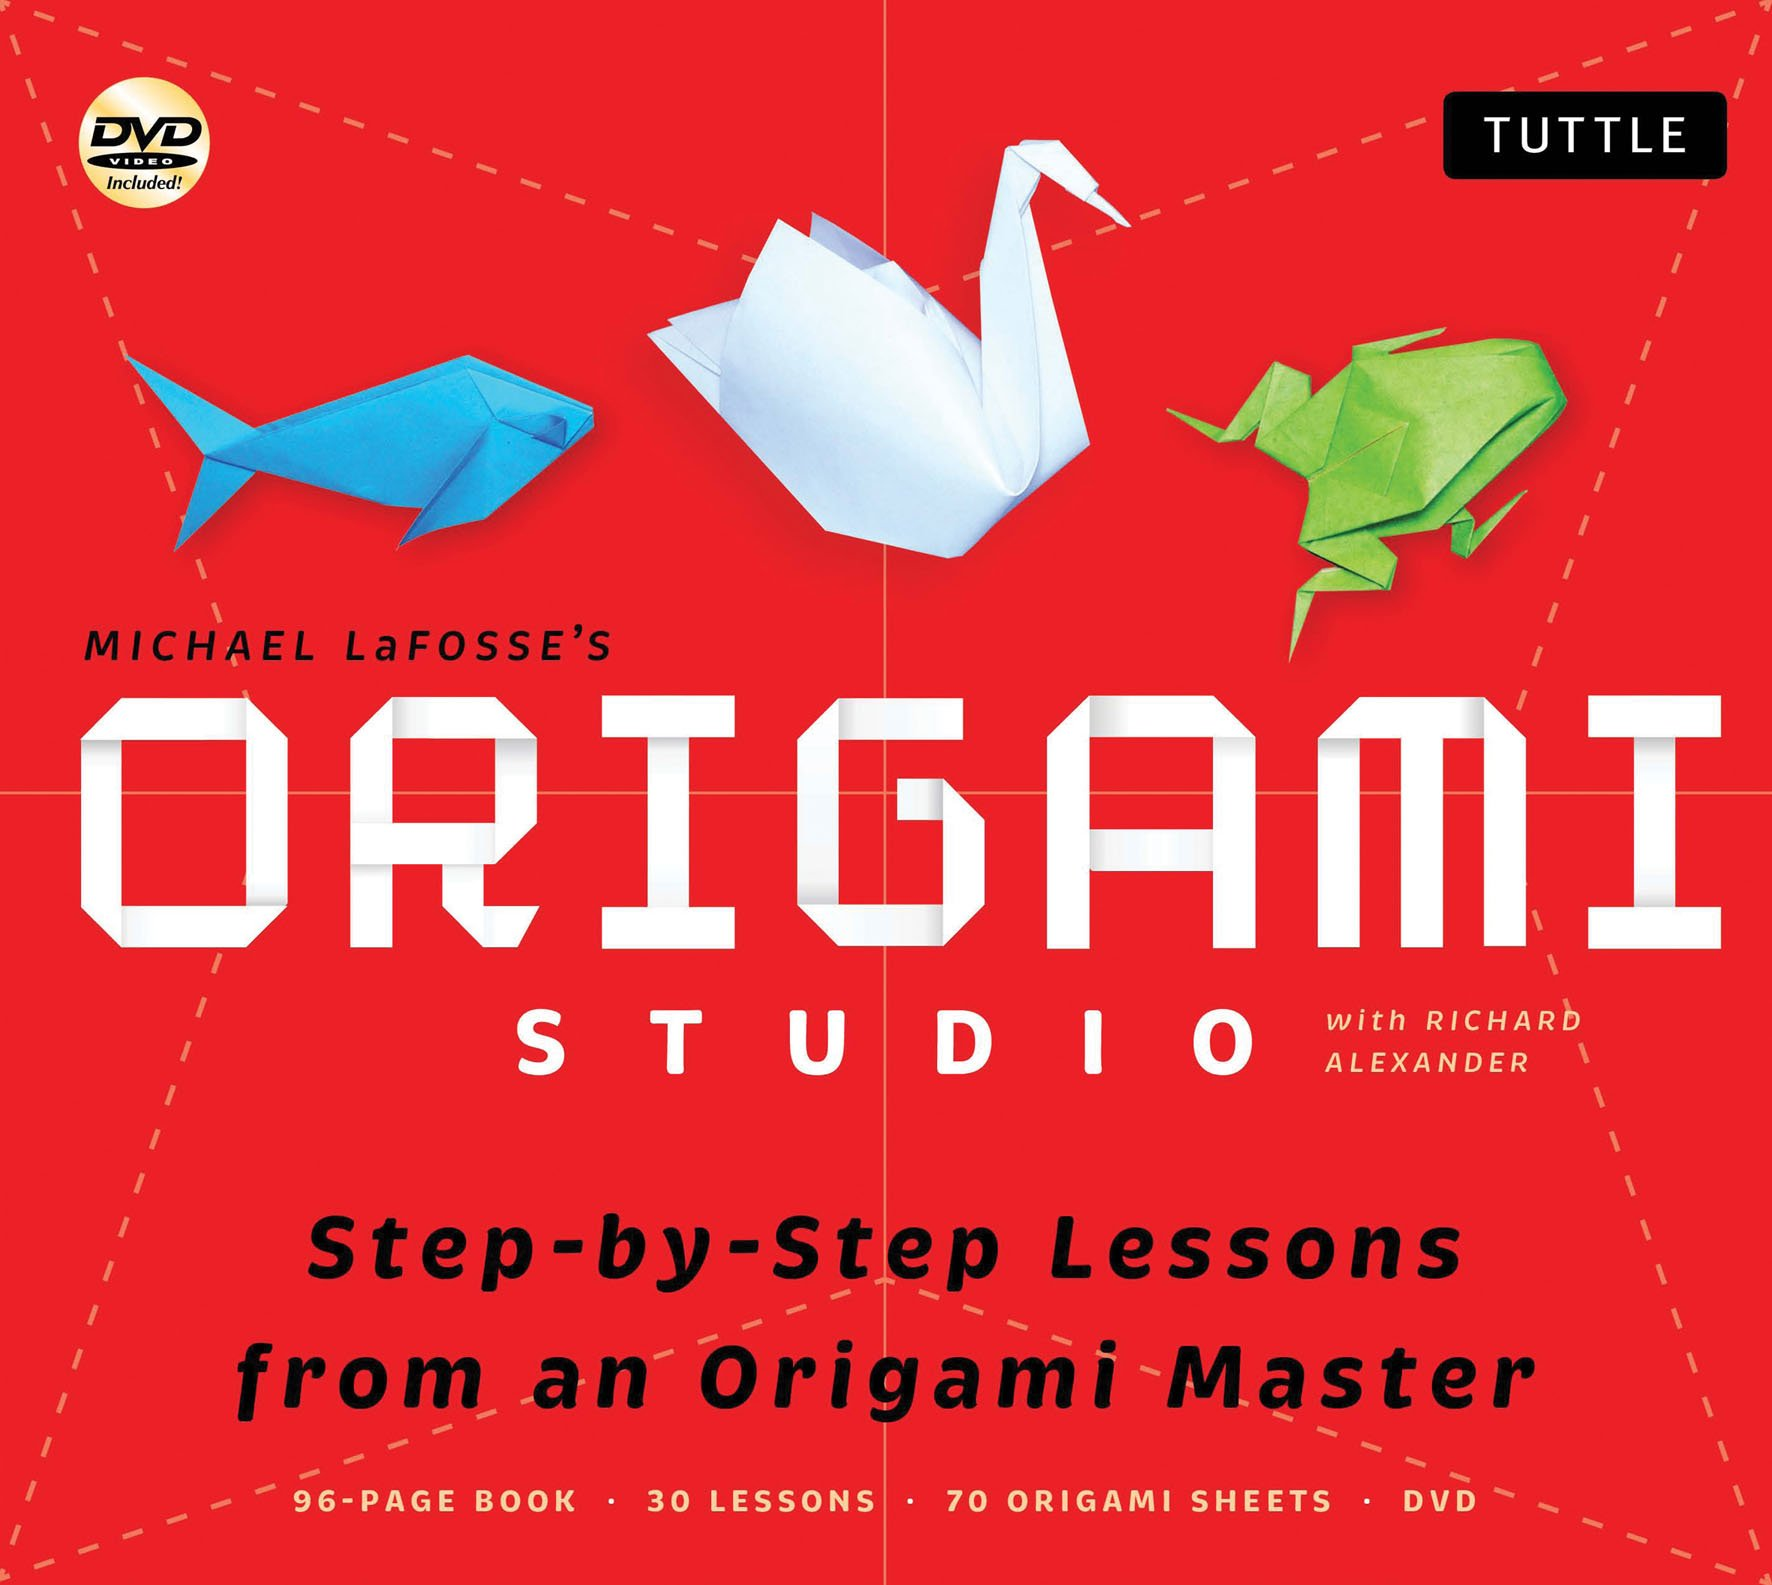 origami-studio-kit-30-step-by-step-lessons-with-an-origami-master-kit-with-origami-book-30-lessons-70-origami-papers-and-instructional-dvd